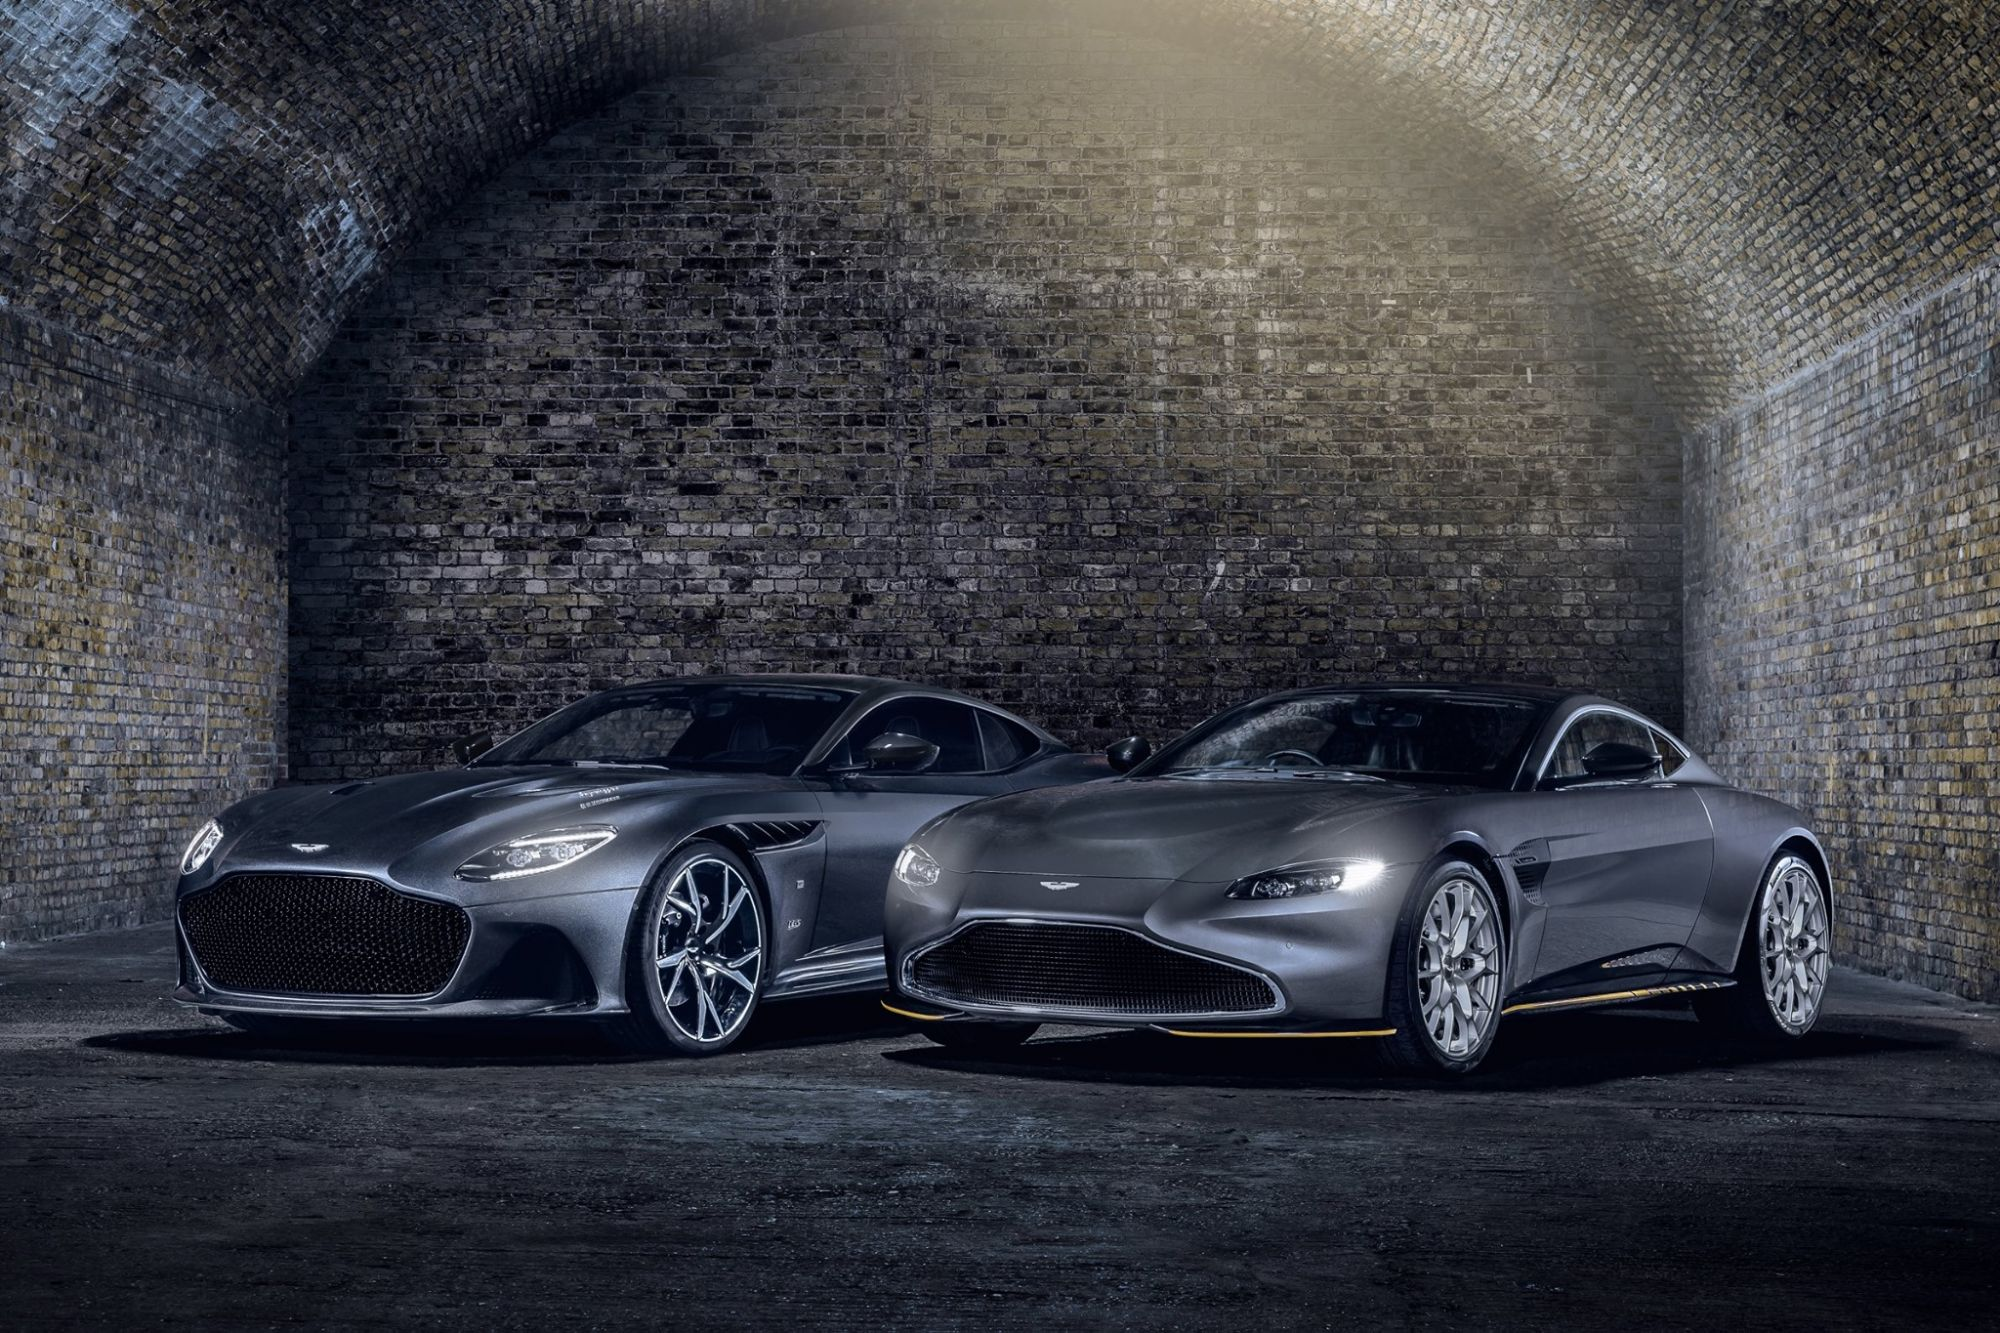 Aston Martin Unveils New James Bond-Inspired Sports Cars